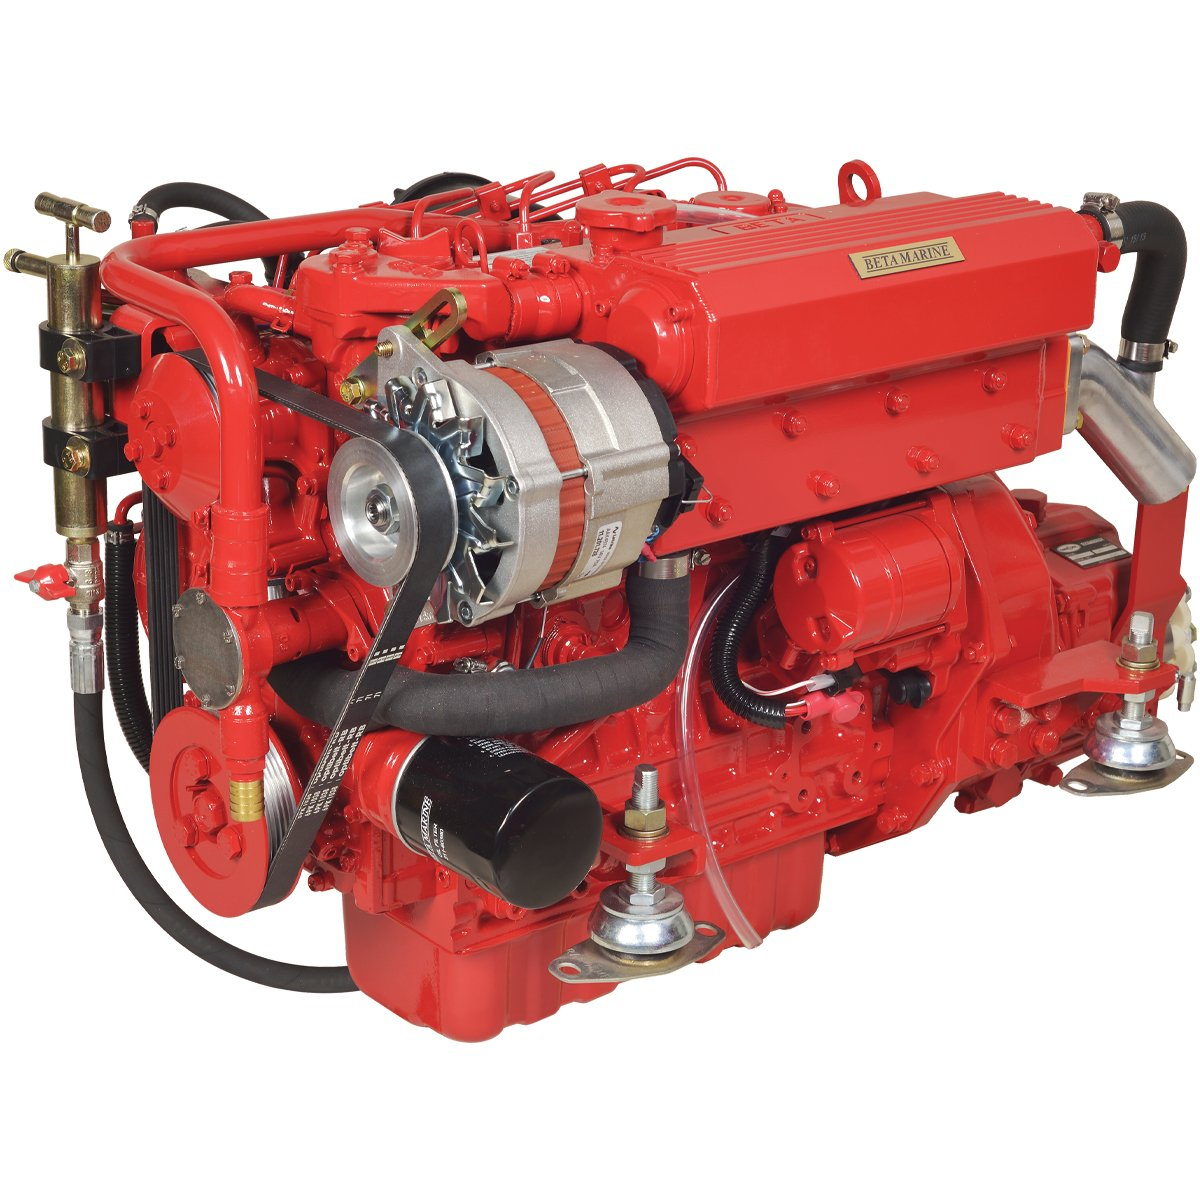 Beta Marine USA - marine diesel propulsion engines - Beta 38 heat exchanger engine